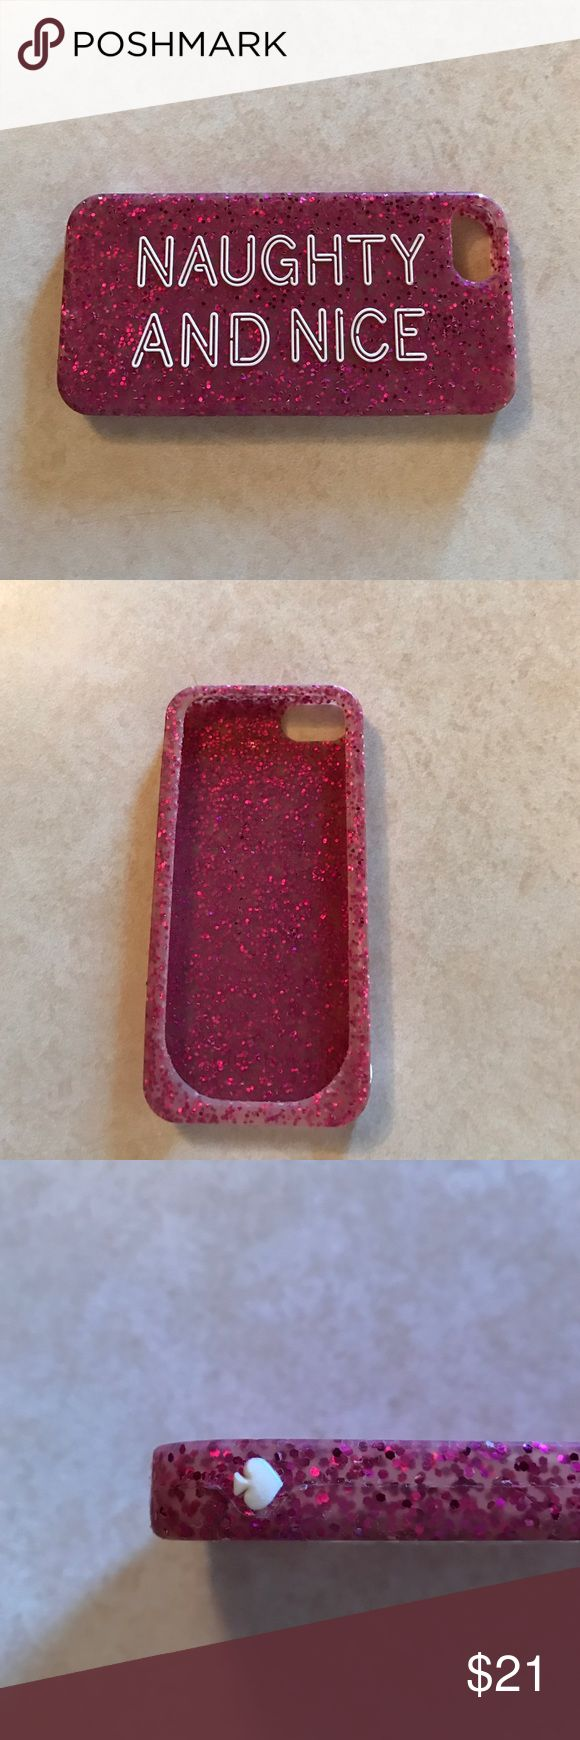 Kate Spade iPhone 5S case Pink sparkle Kate Spade iPhone 5s silicone phone case. Gently used; no tears. kate spade Accessories Phone Cases